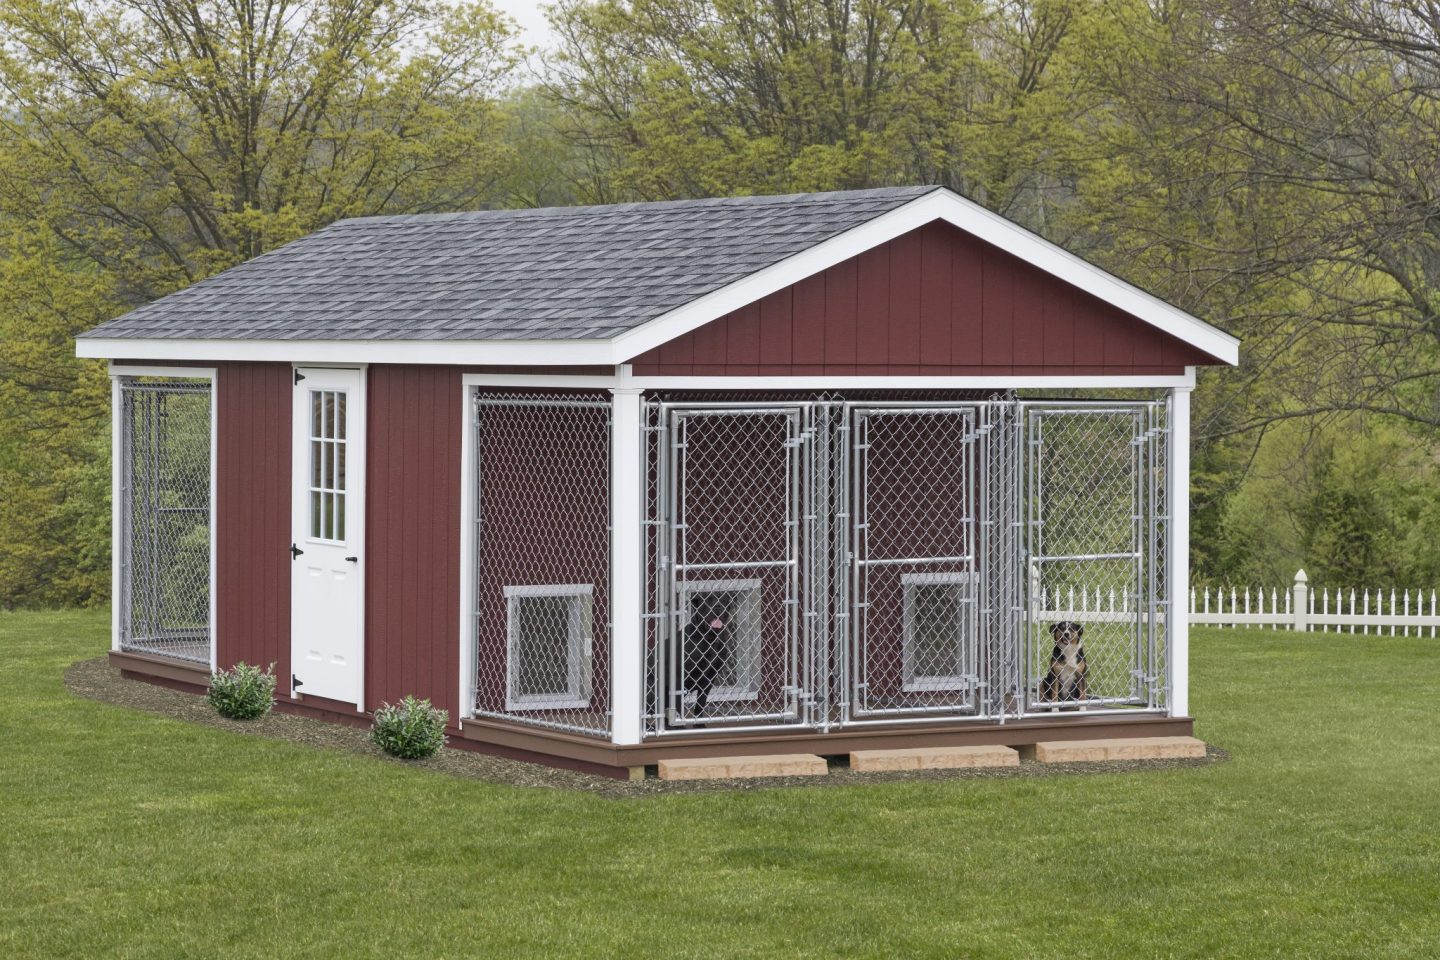 Stoltzfus Structures Outdoor Dog Kennels | Dog Kennels For Sale | Stoltzfus